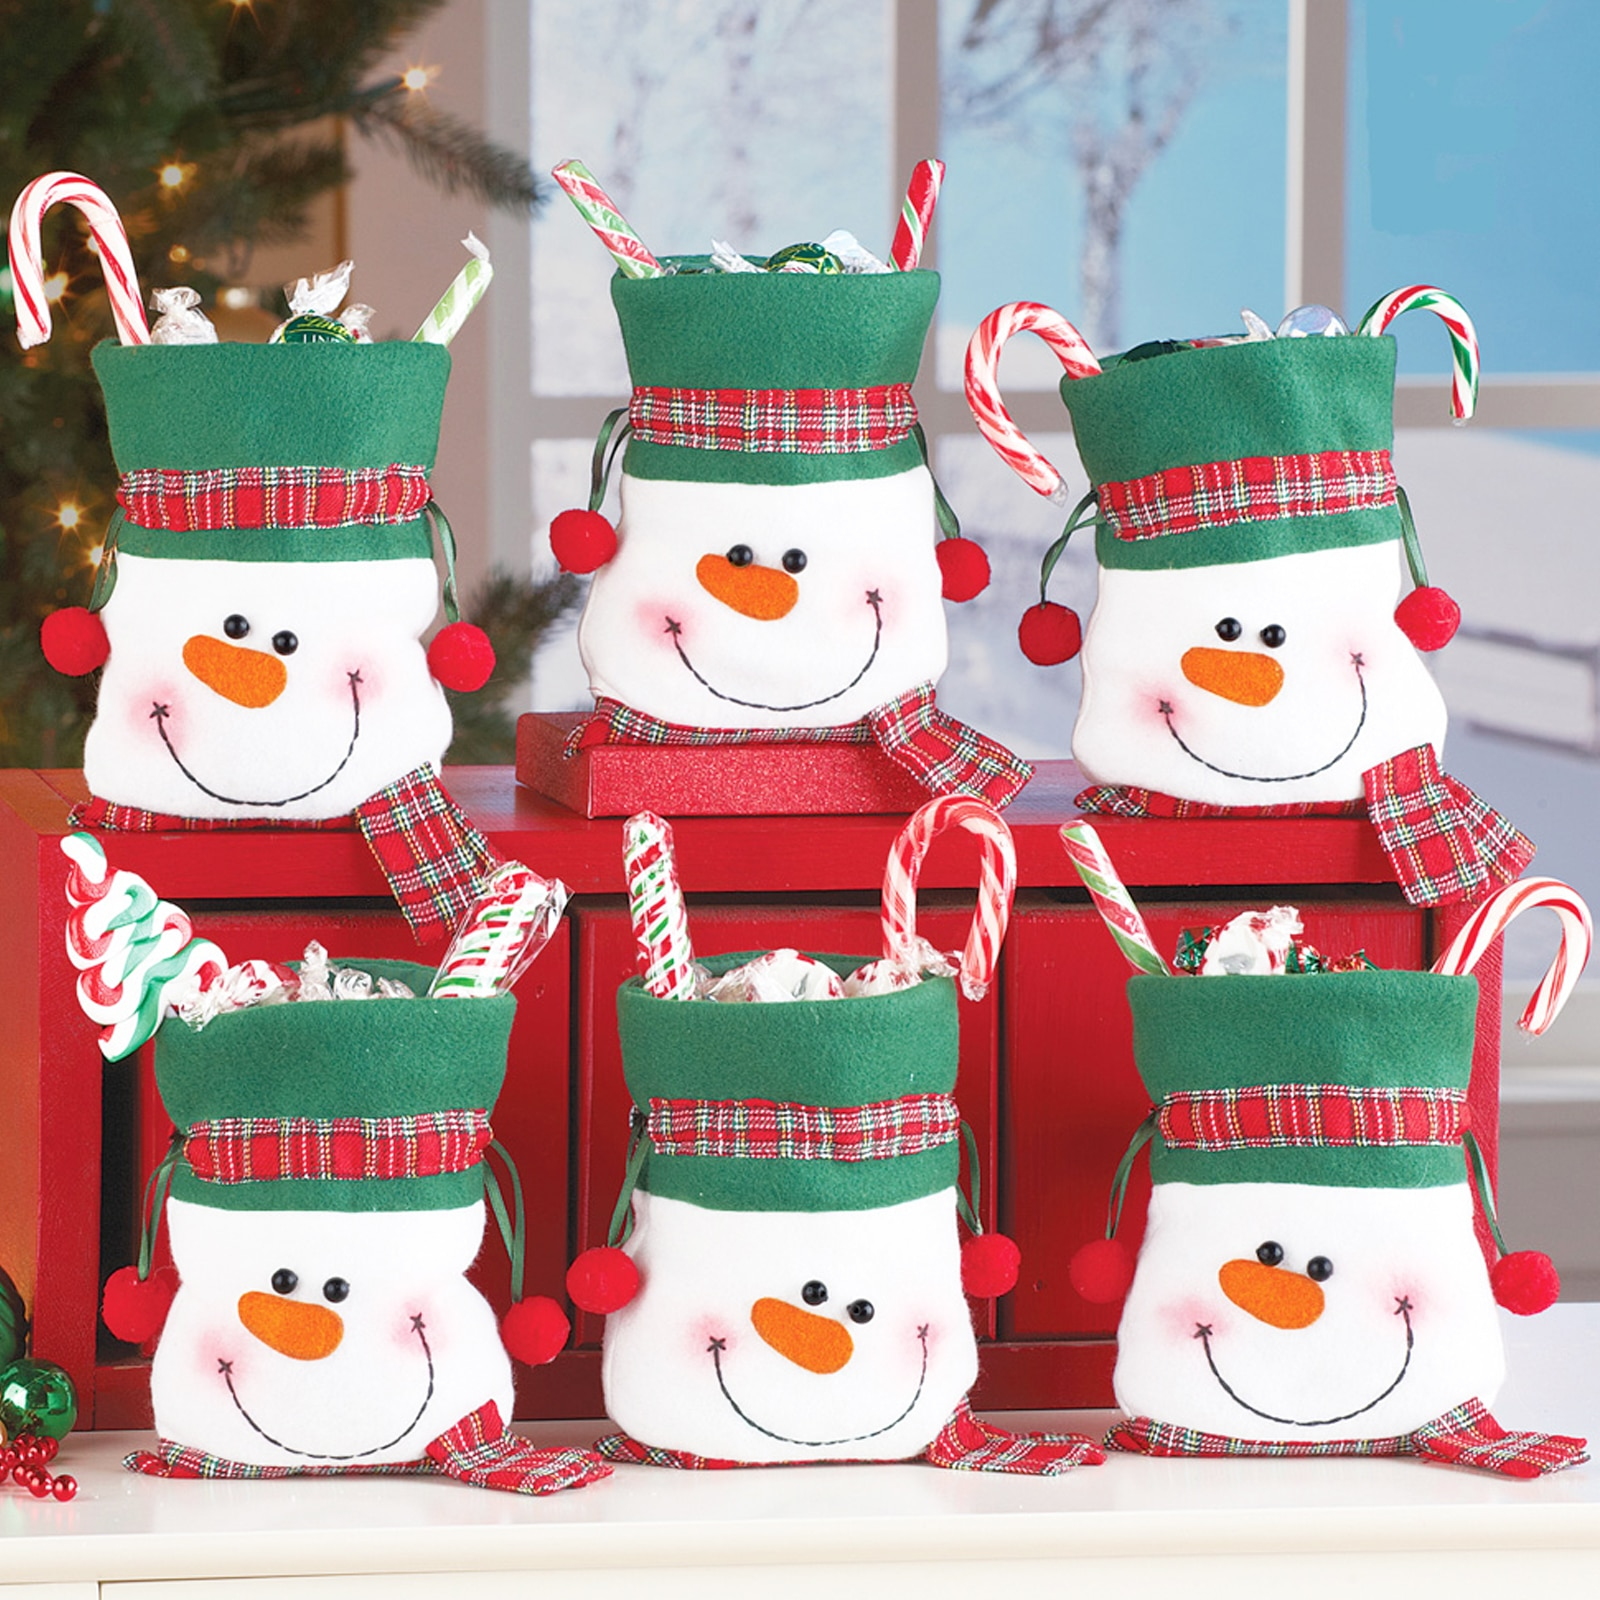 25x16cm Christmas Snowman Bunch of Candy Bags Christmas Products Children's Gift Bag Holiday Xmas Pa